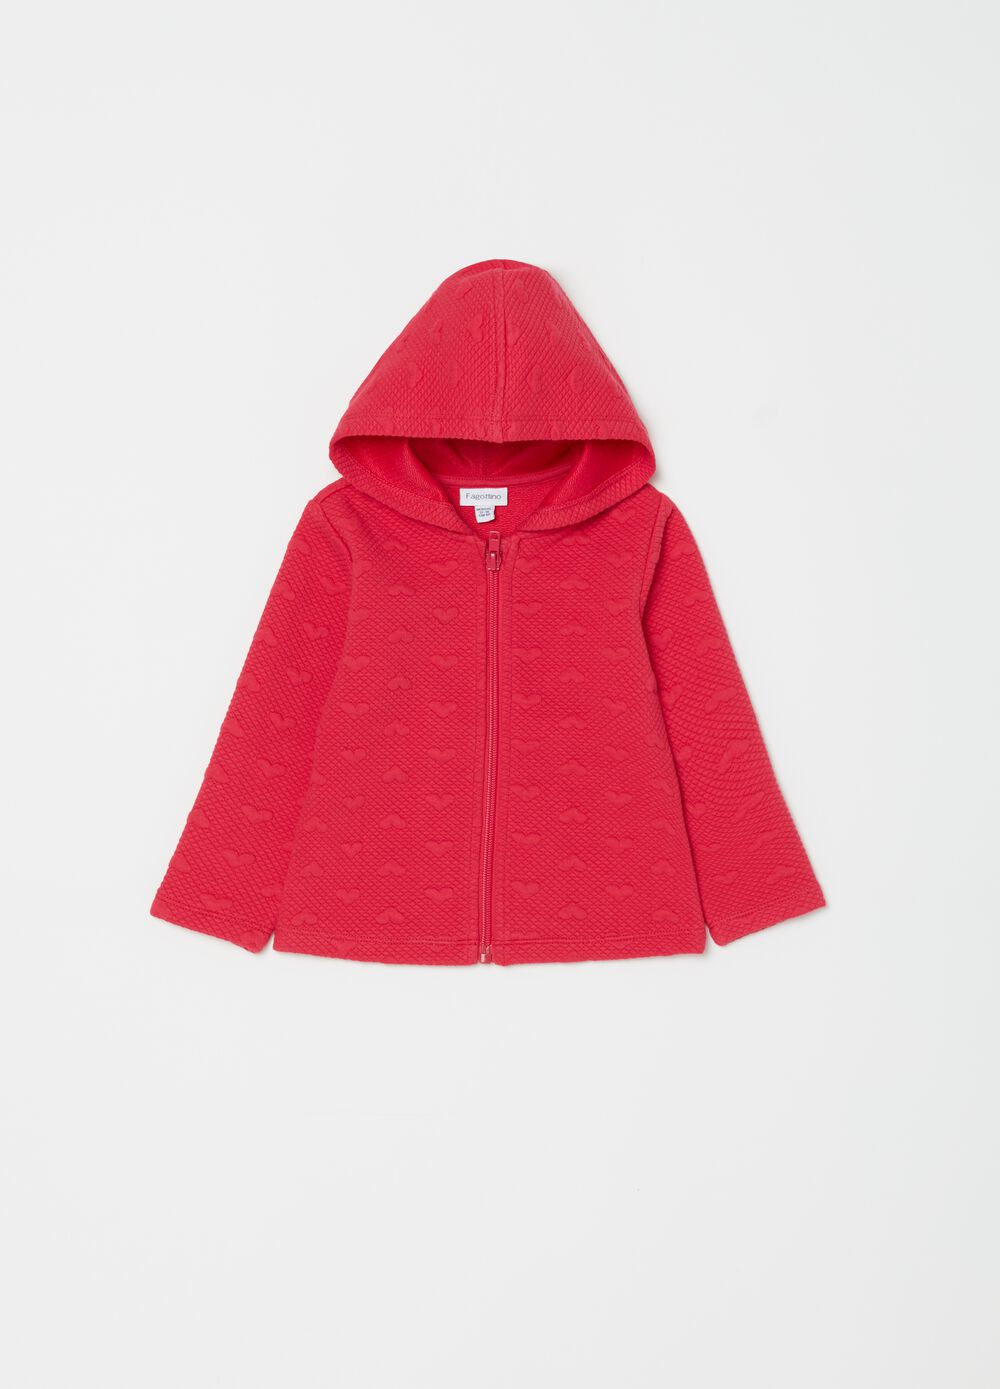 Stretch sweatshirt with hearts embroidery and hood